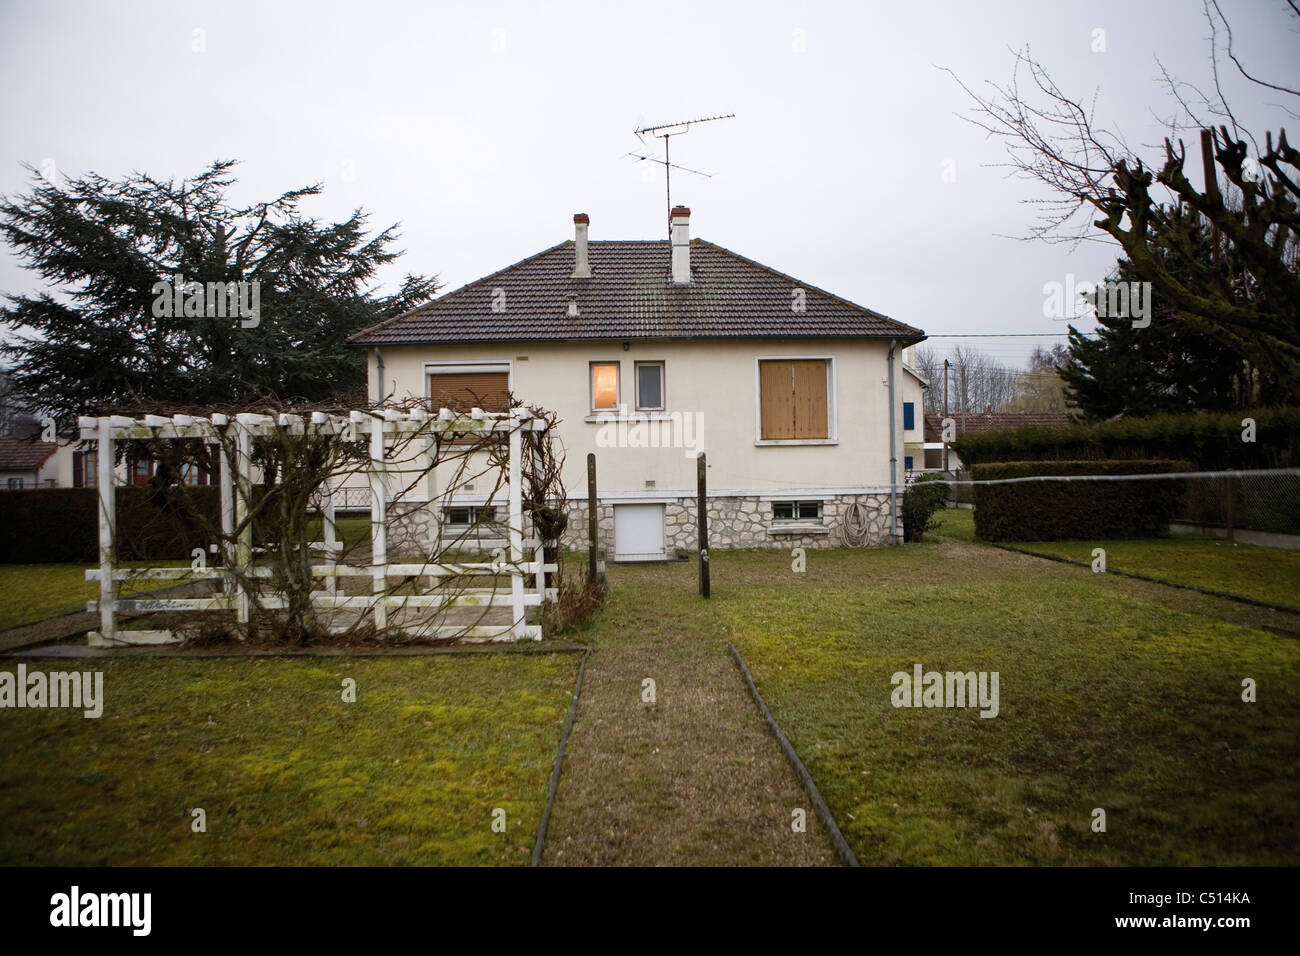 Rear of house and backyard - Stock Image